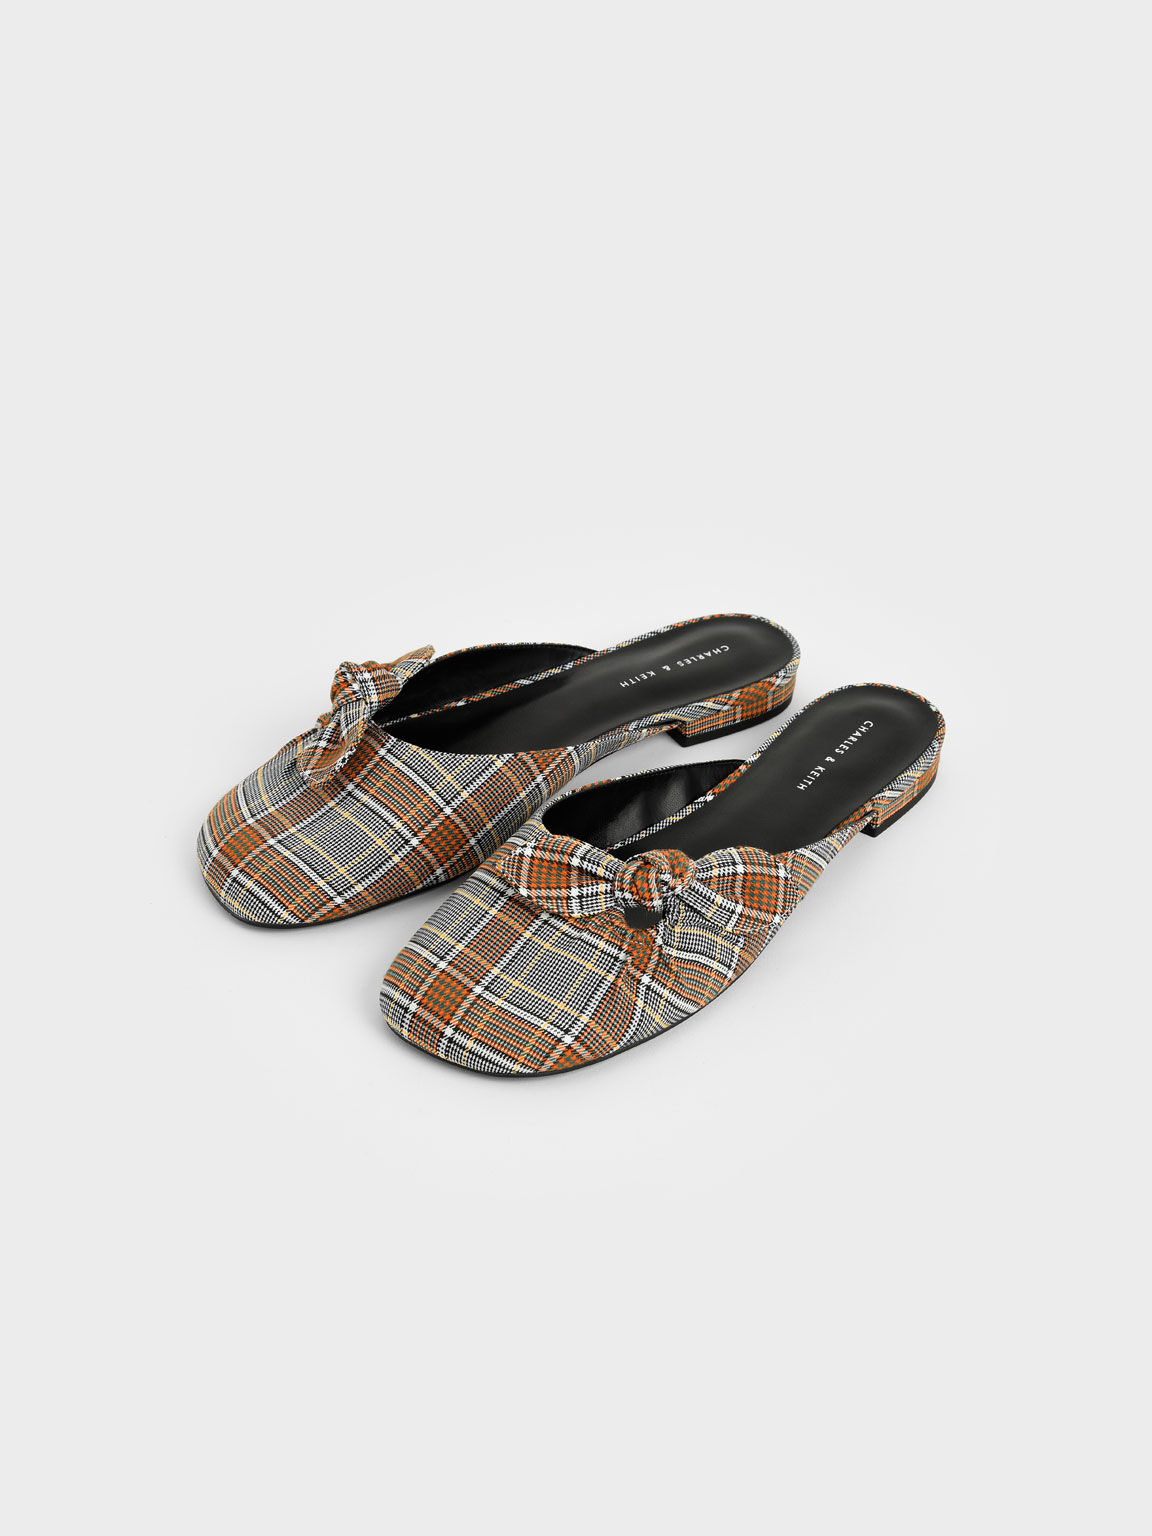 Sandal Check Print Knotted Fabric Mules, Grey, hi-res